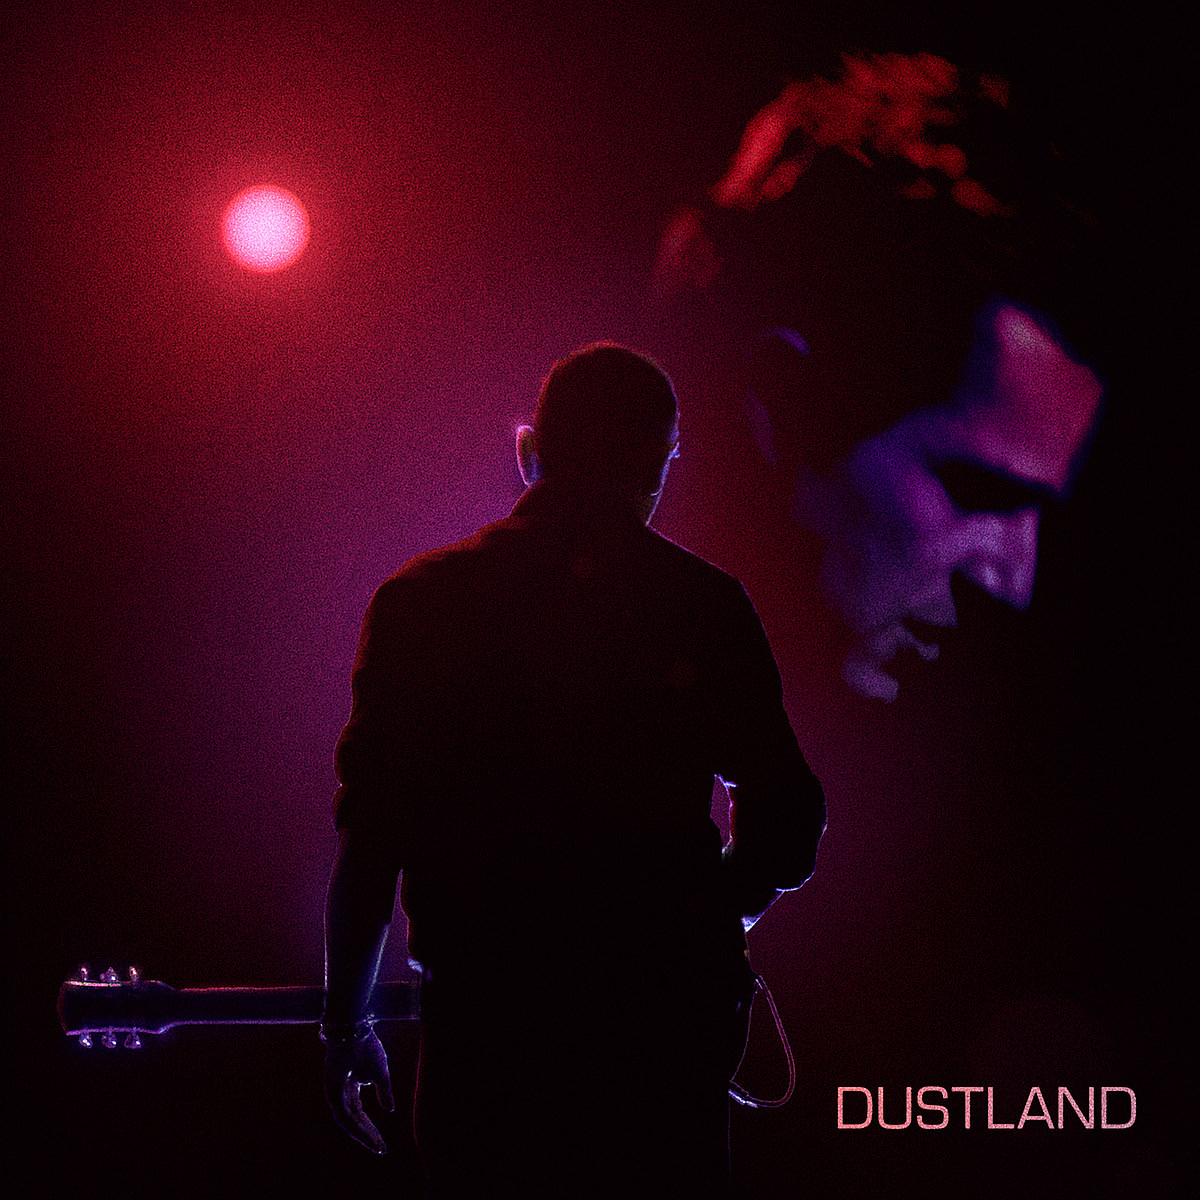 """Listen to The Killers & Bruce Springsteen's collaborative song """"Dustland"""""""